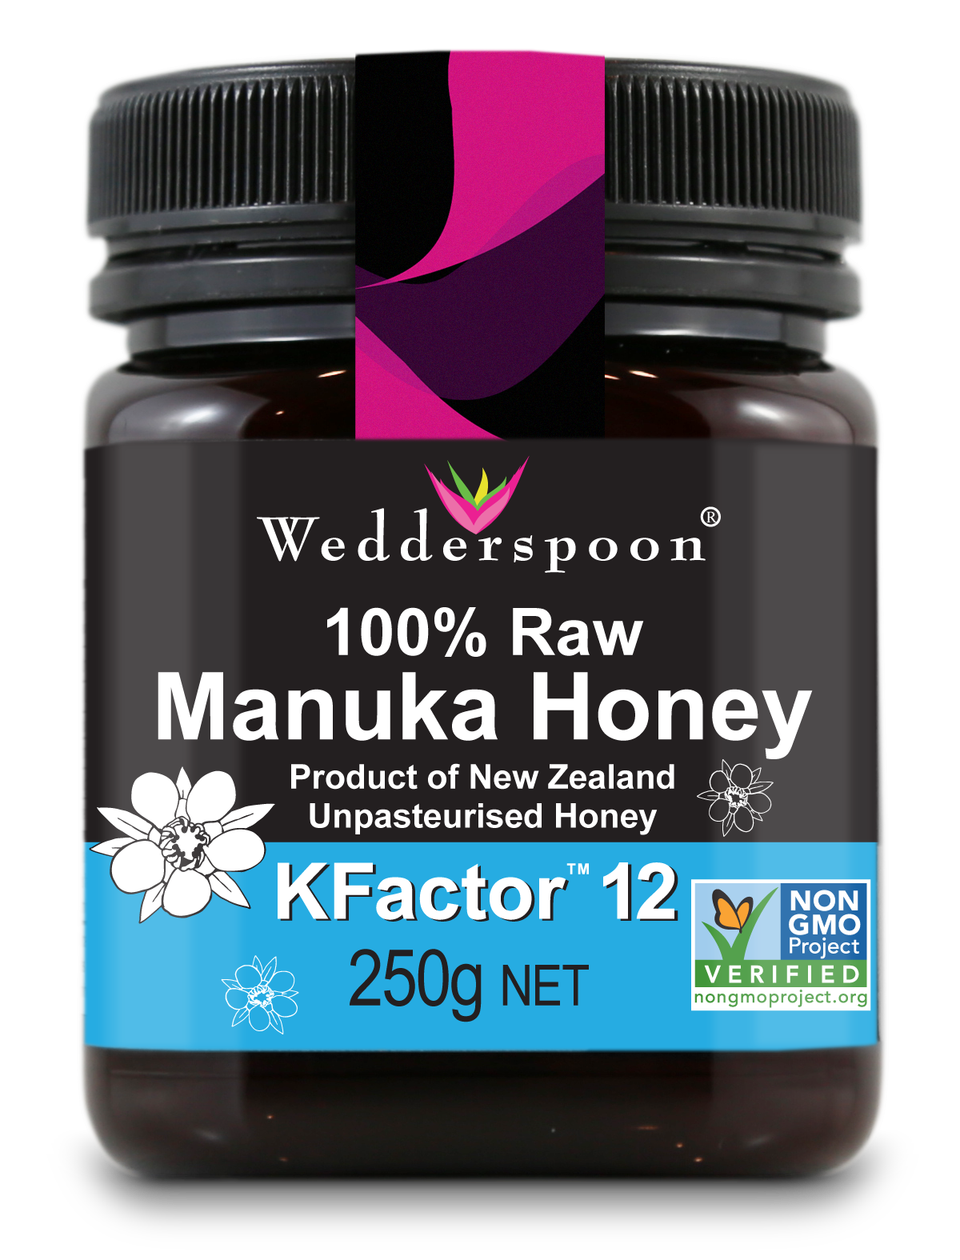 100% Raw Manuka Kfactor 12 Honey 250g.